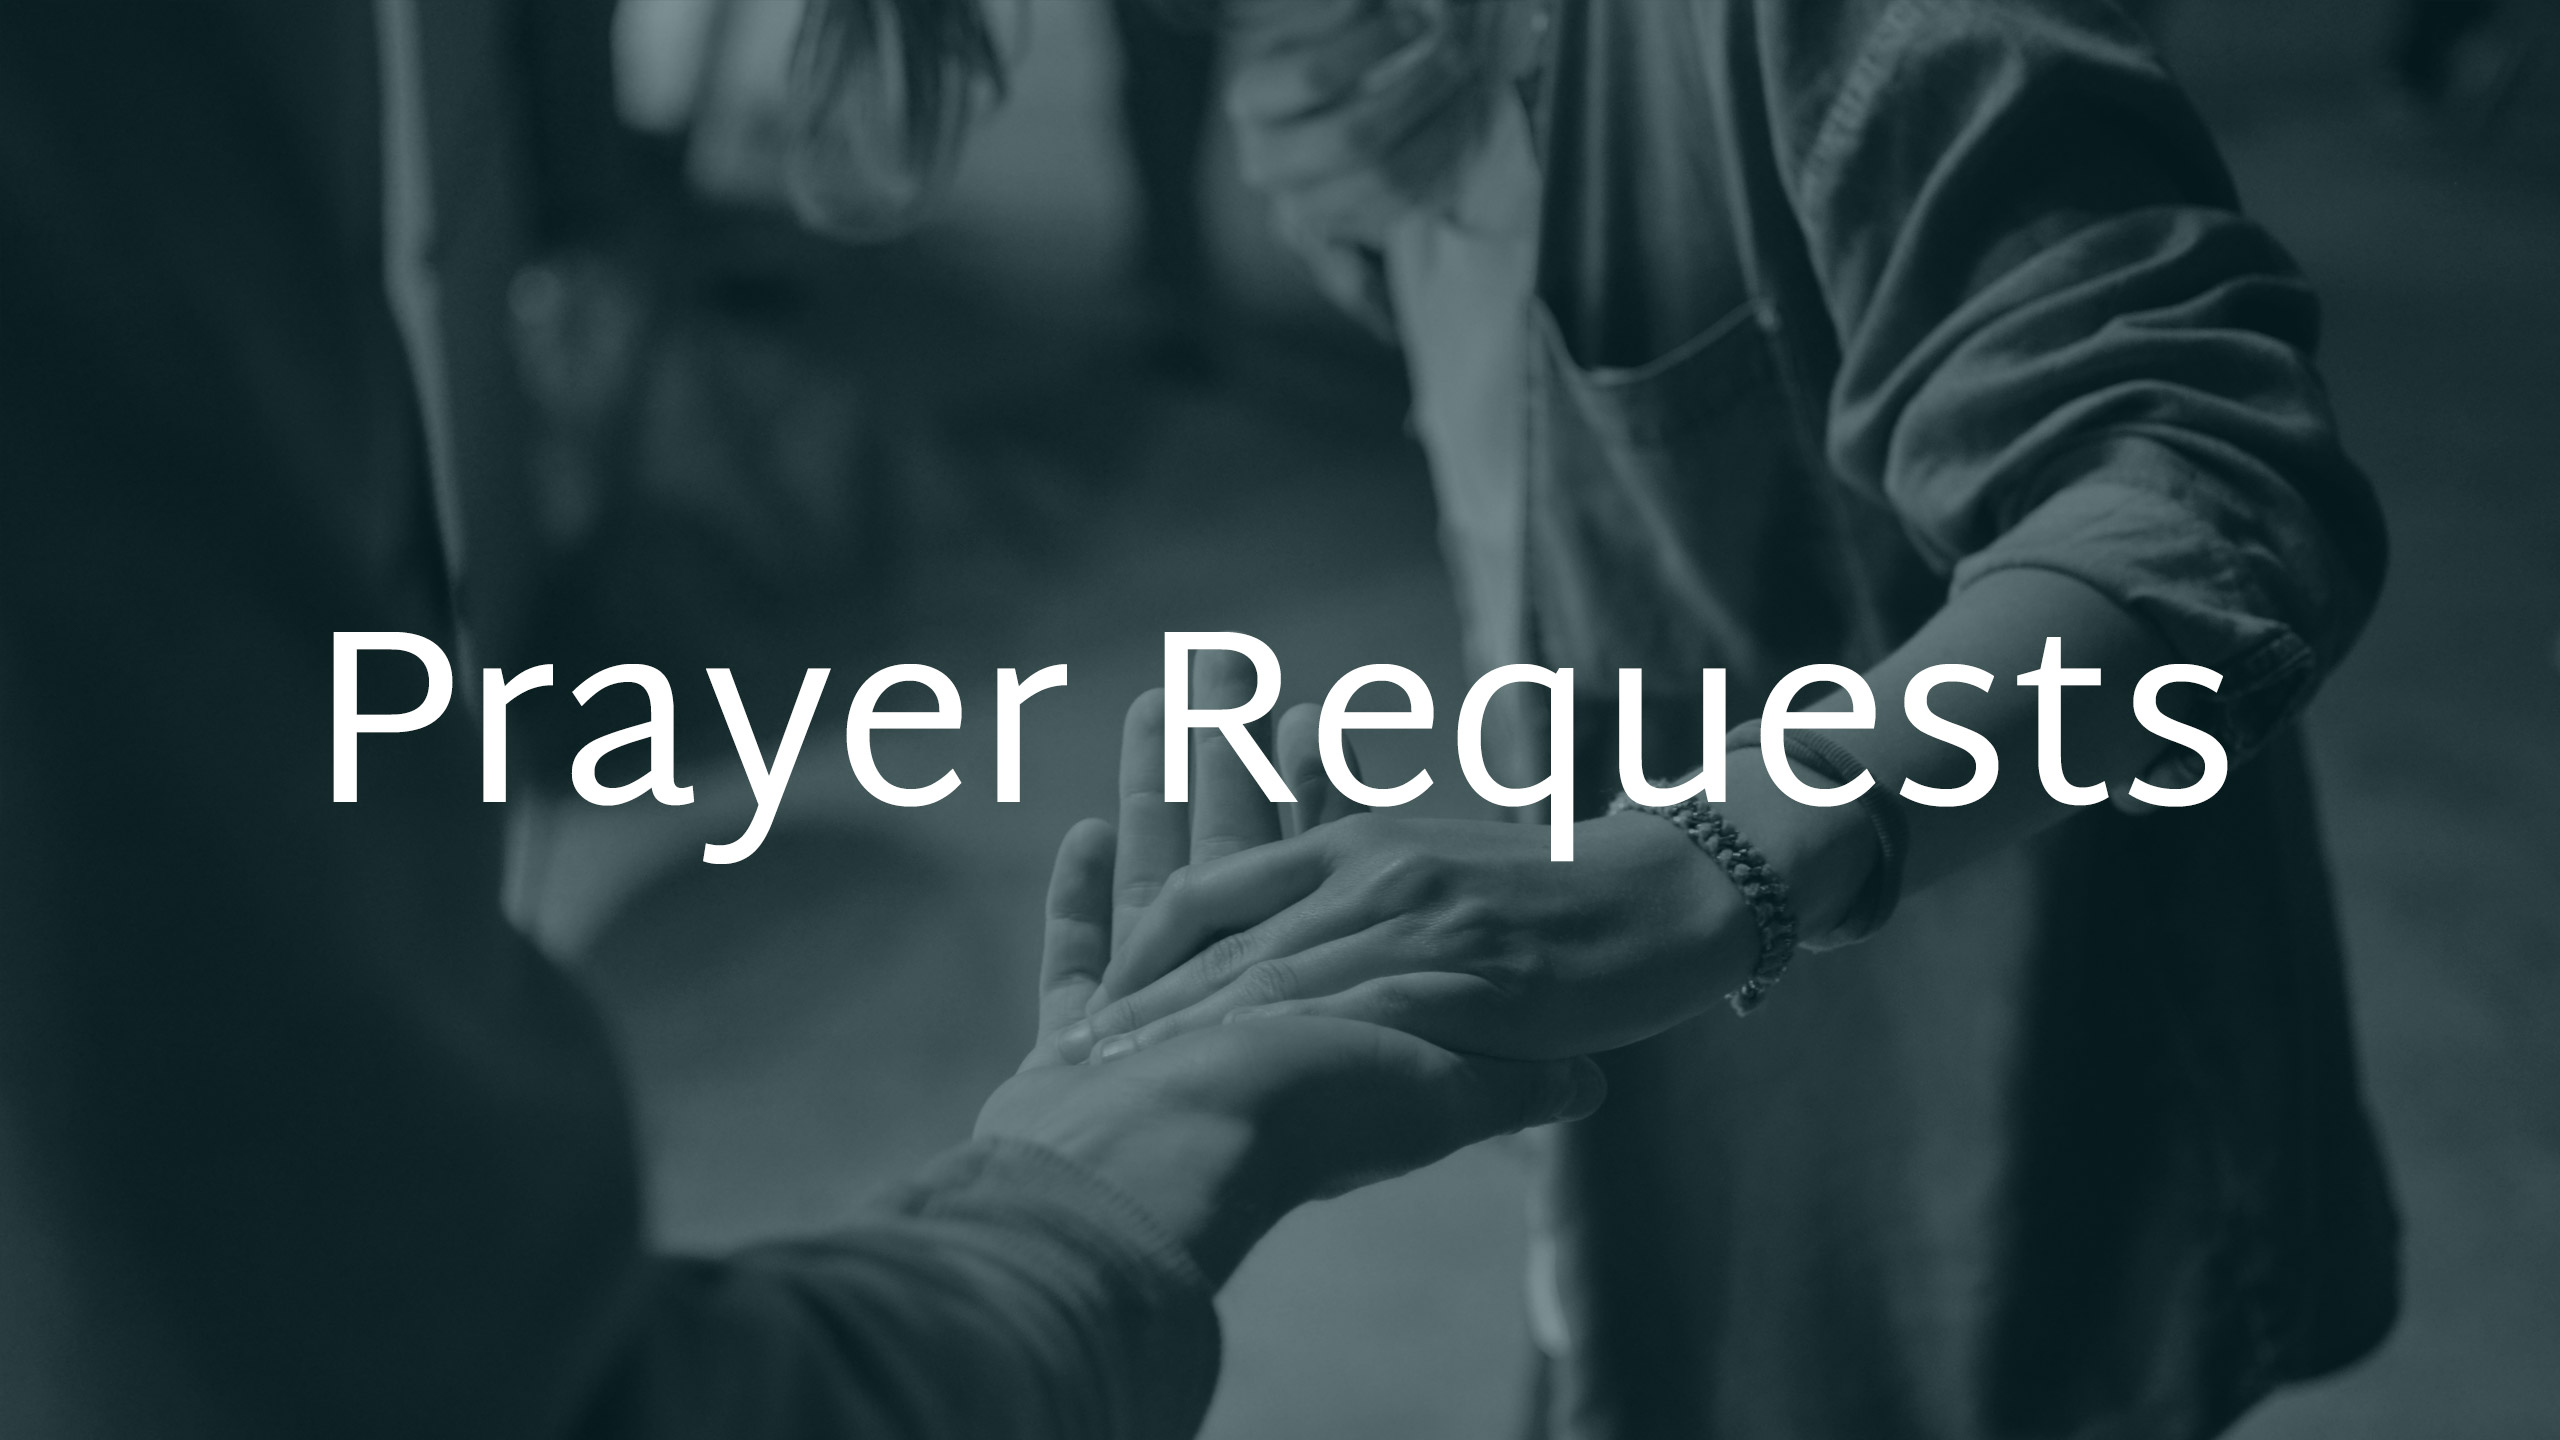 Prayer Requests Image